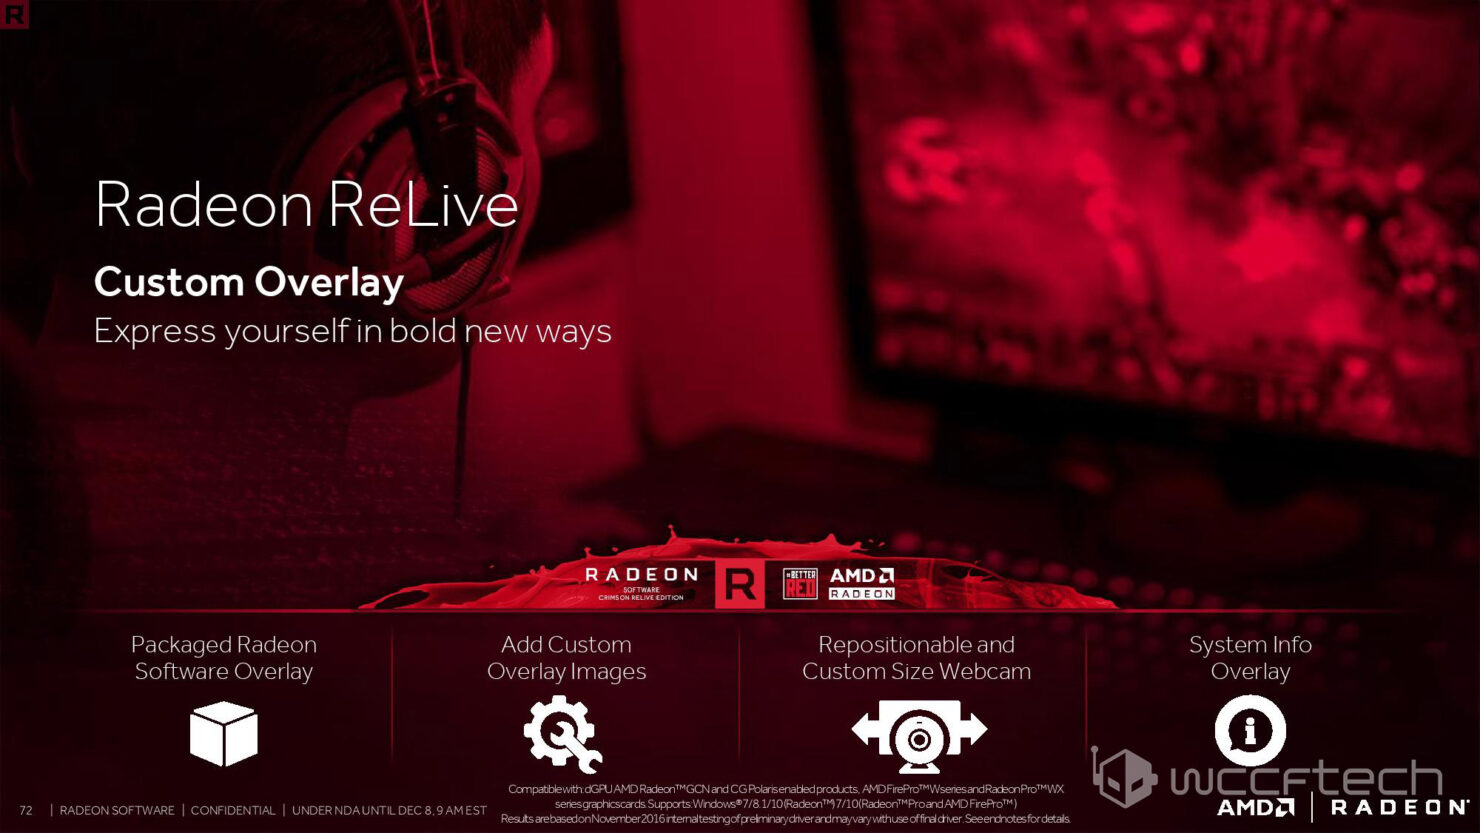 radeon-software-crimson-relive-nda-only-confidential-v4-page-071-copy